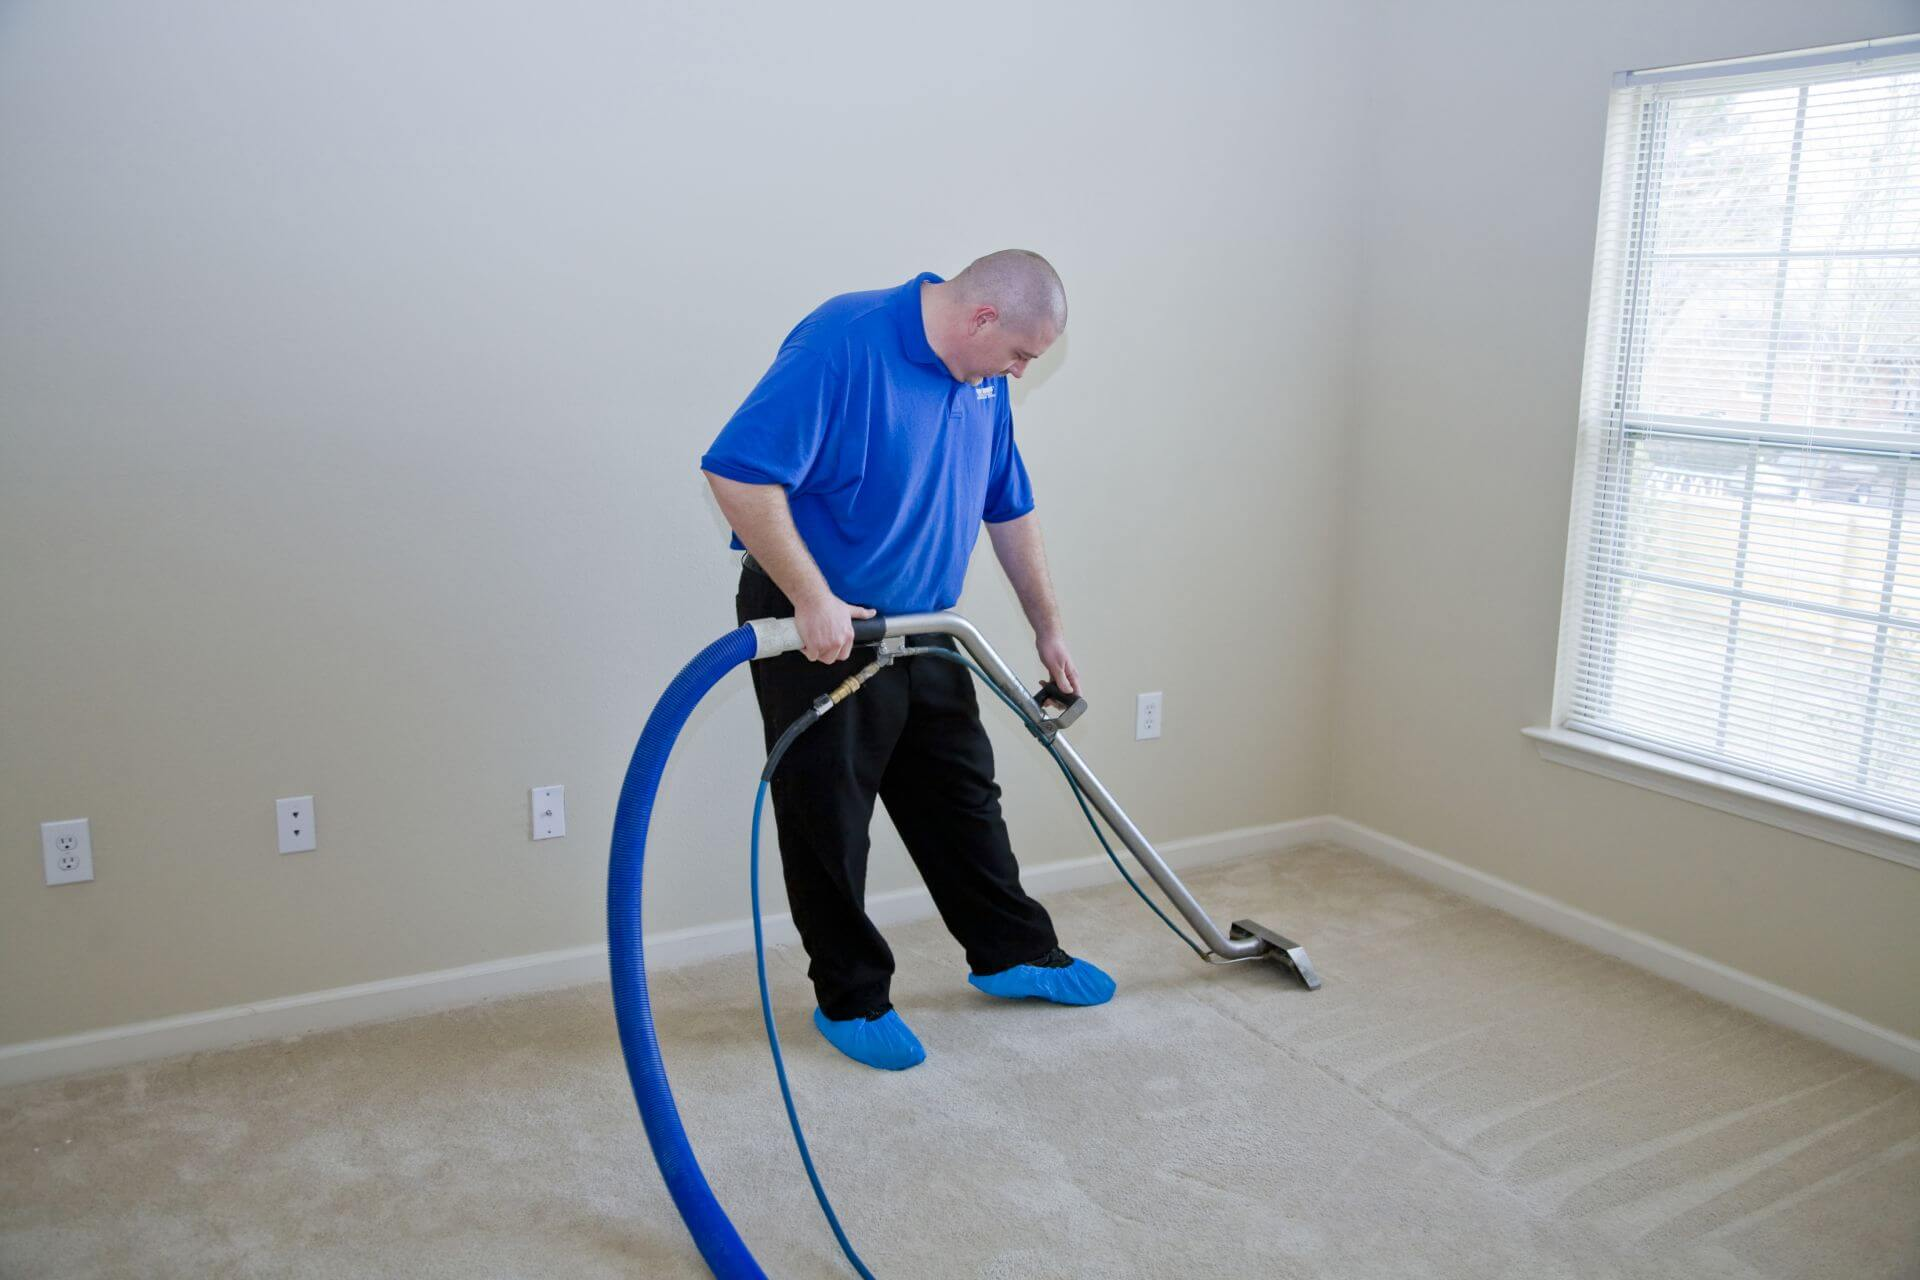 Expert Advice For Finding A Carpet Cleaning Company To Meet Your Needs